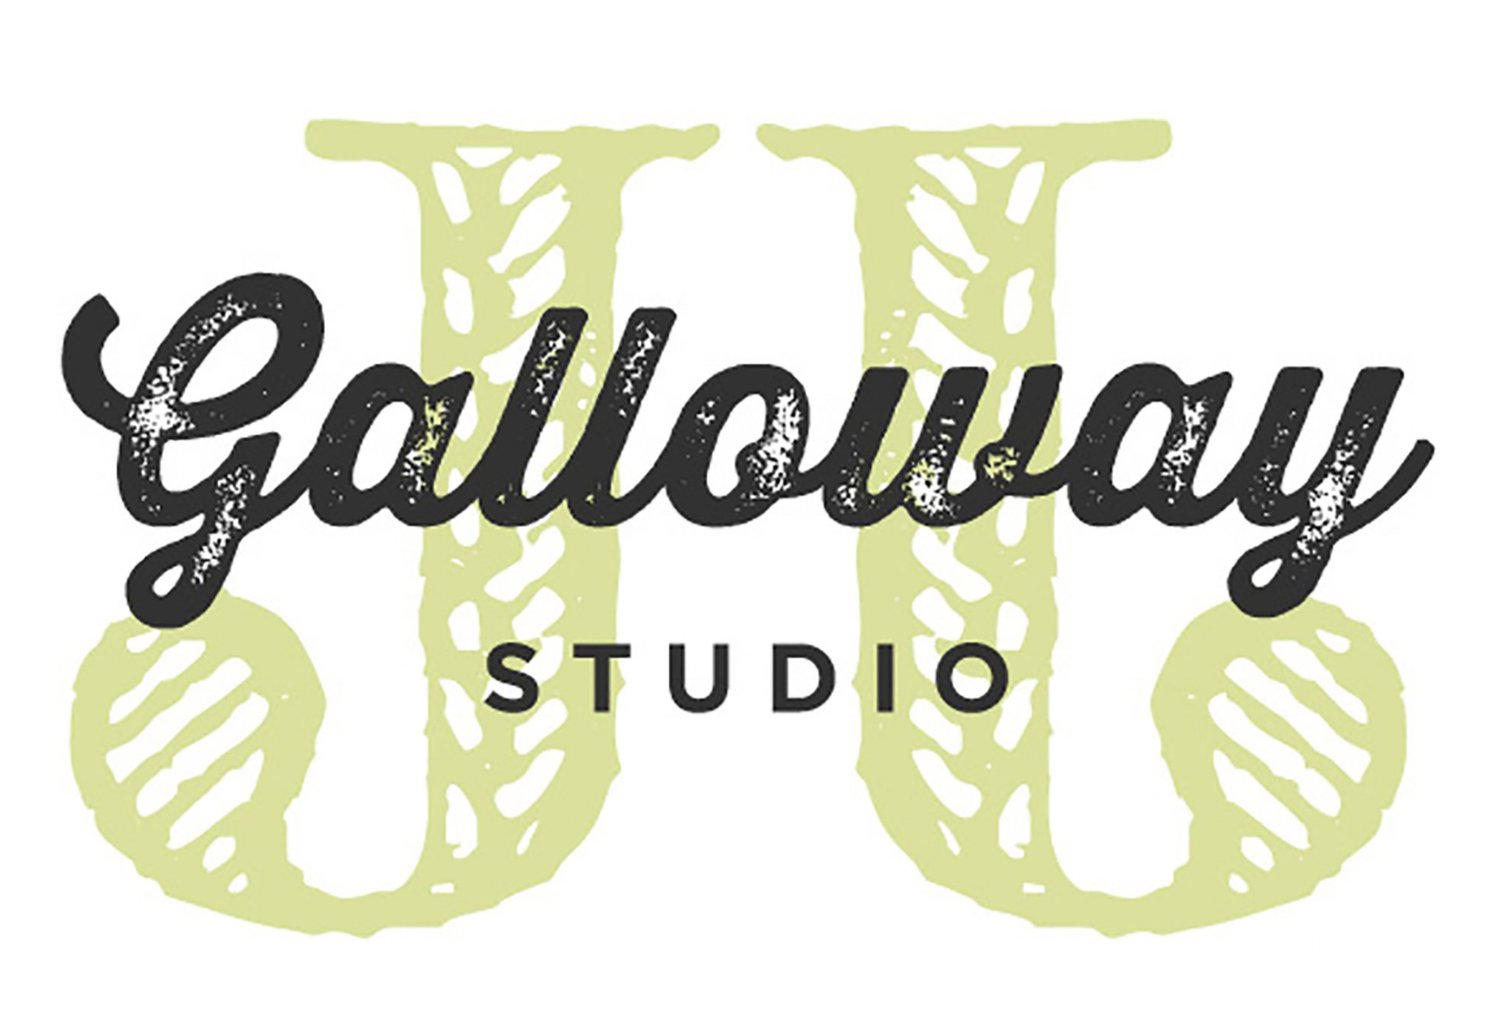 JJ Galloway Studio Art